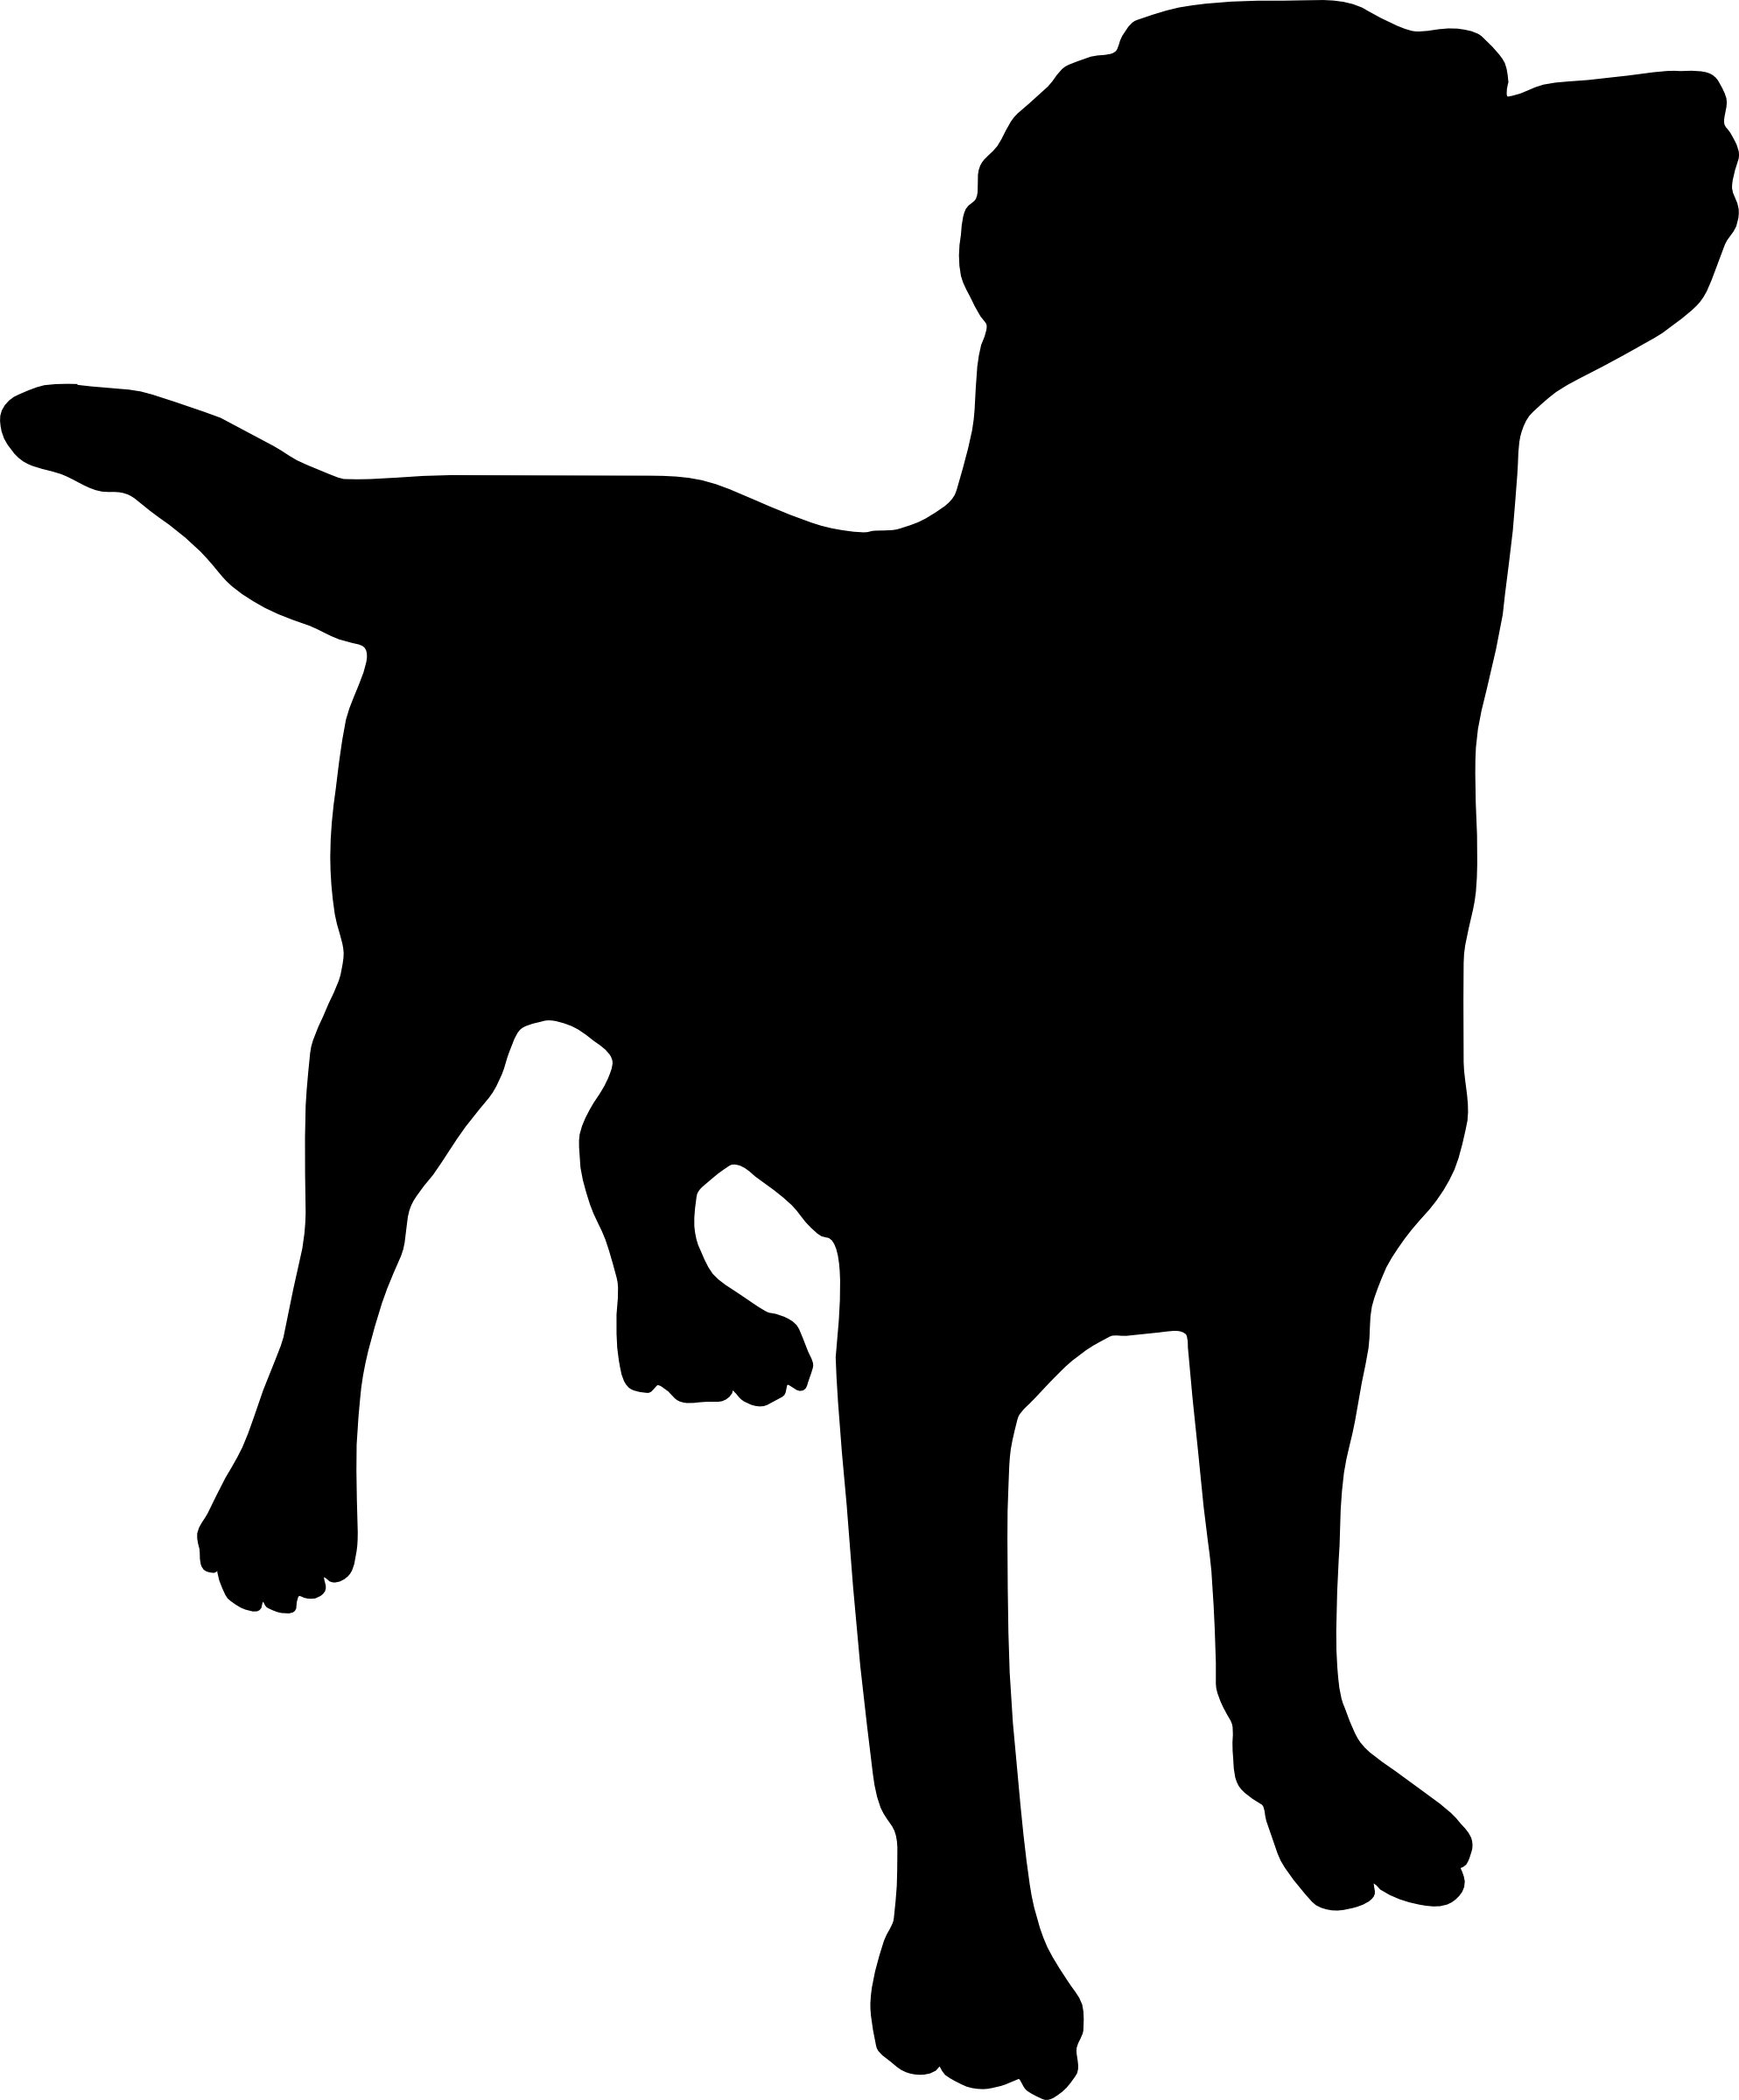 Dog picture clipart picture transparent library Dog Cat Silhouette at GetDrawings.com | Free for personal use Dog ... picture transparent library